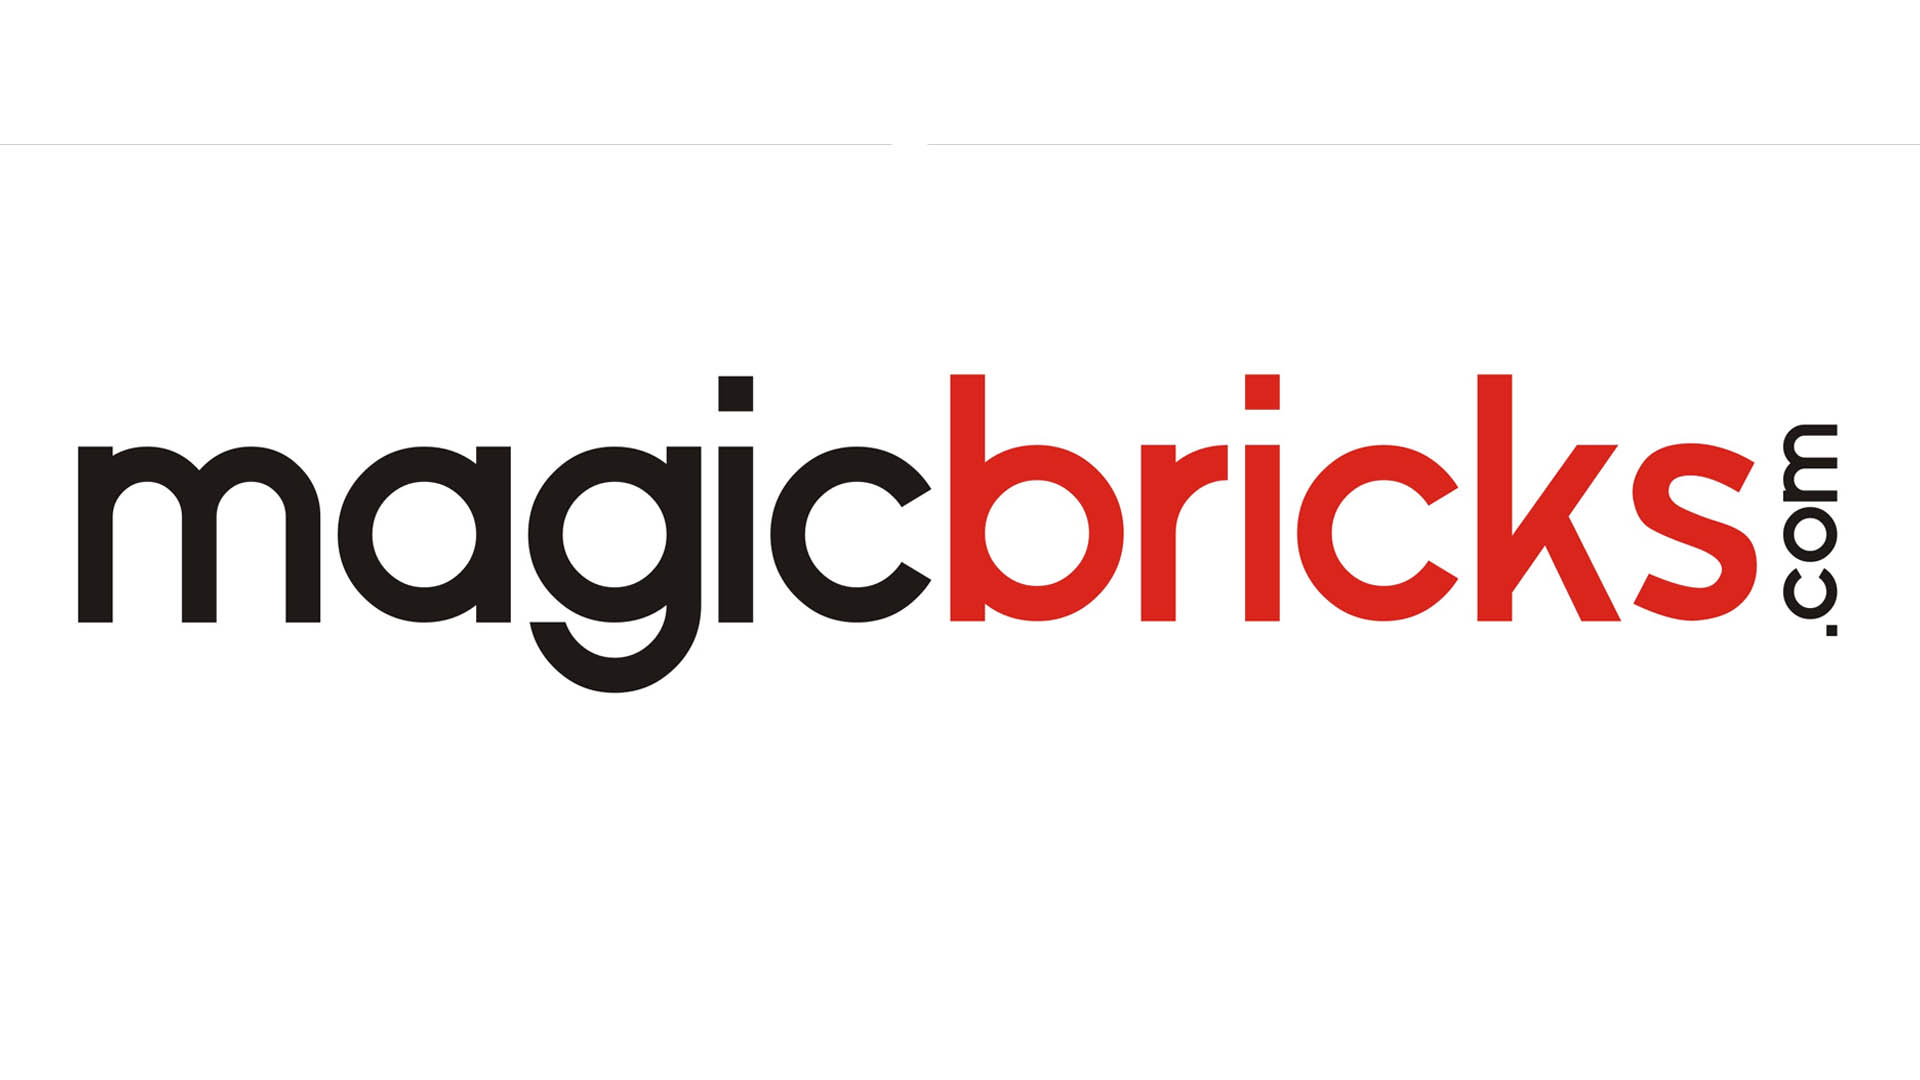 Magicbricks Ads Singing And Dancing To Housing